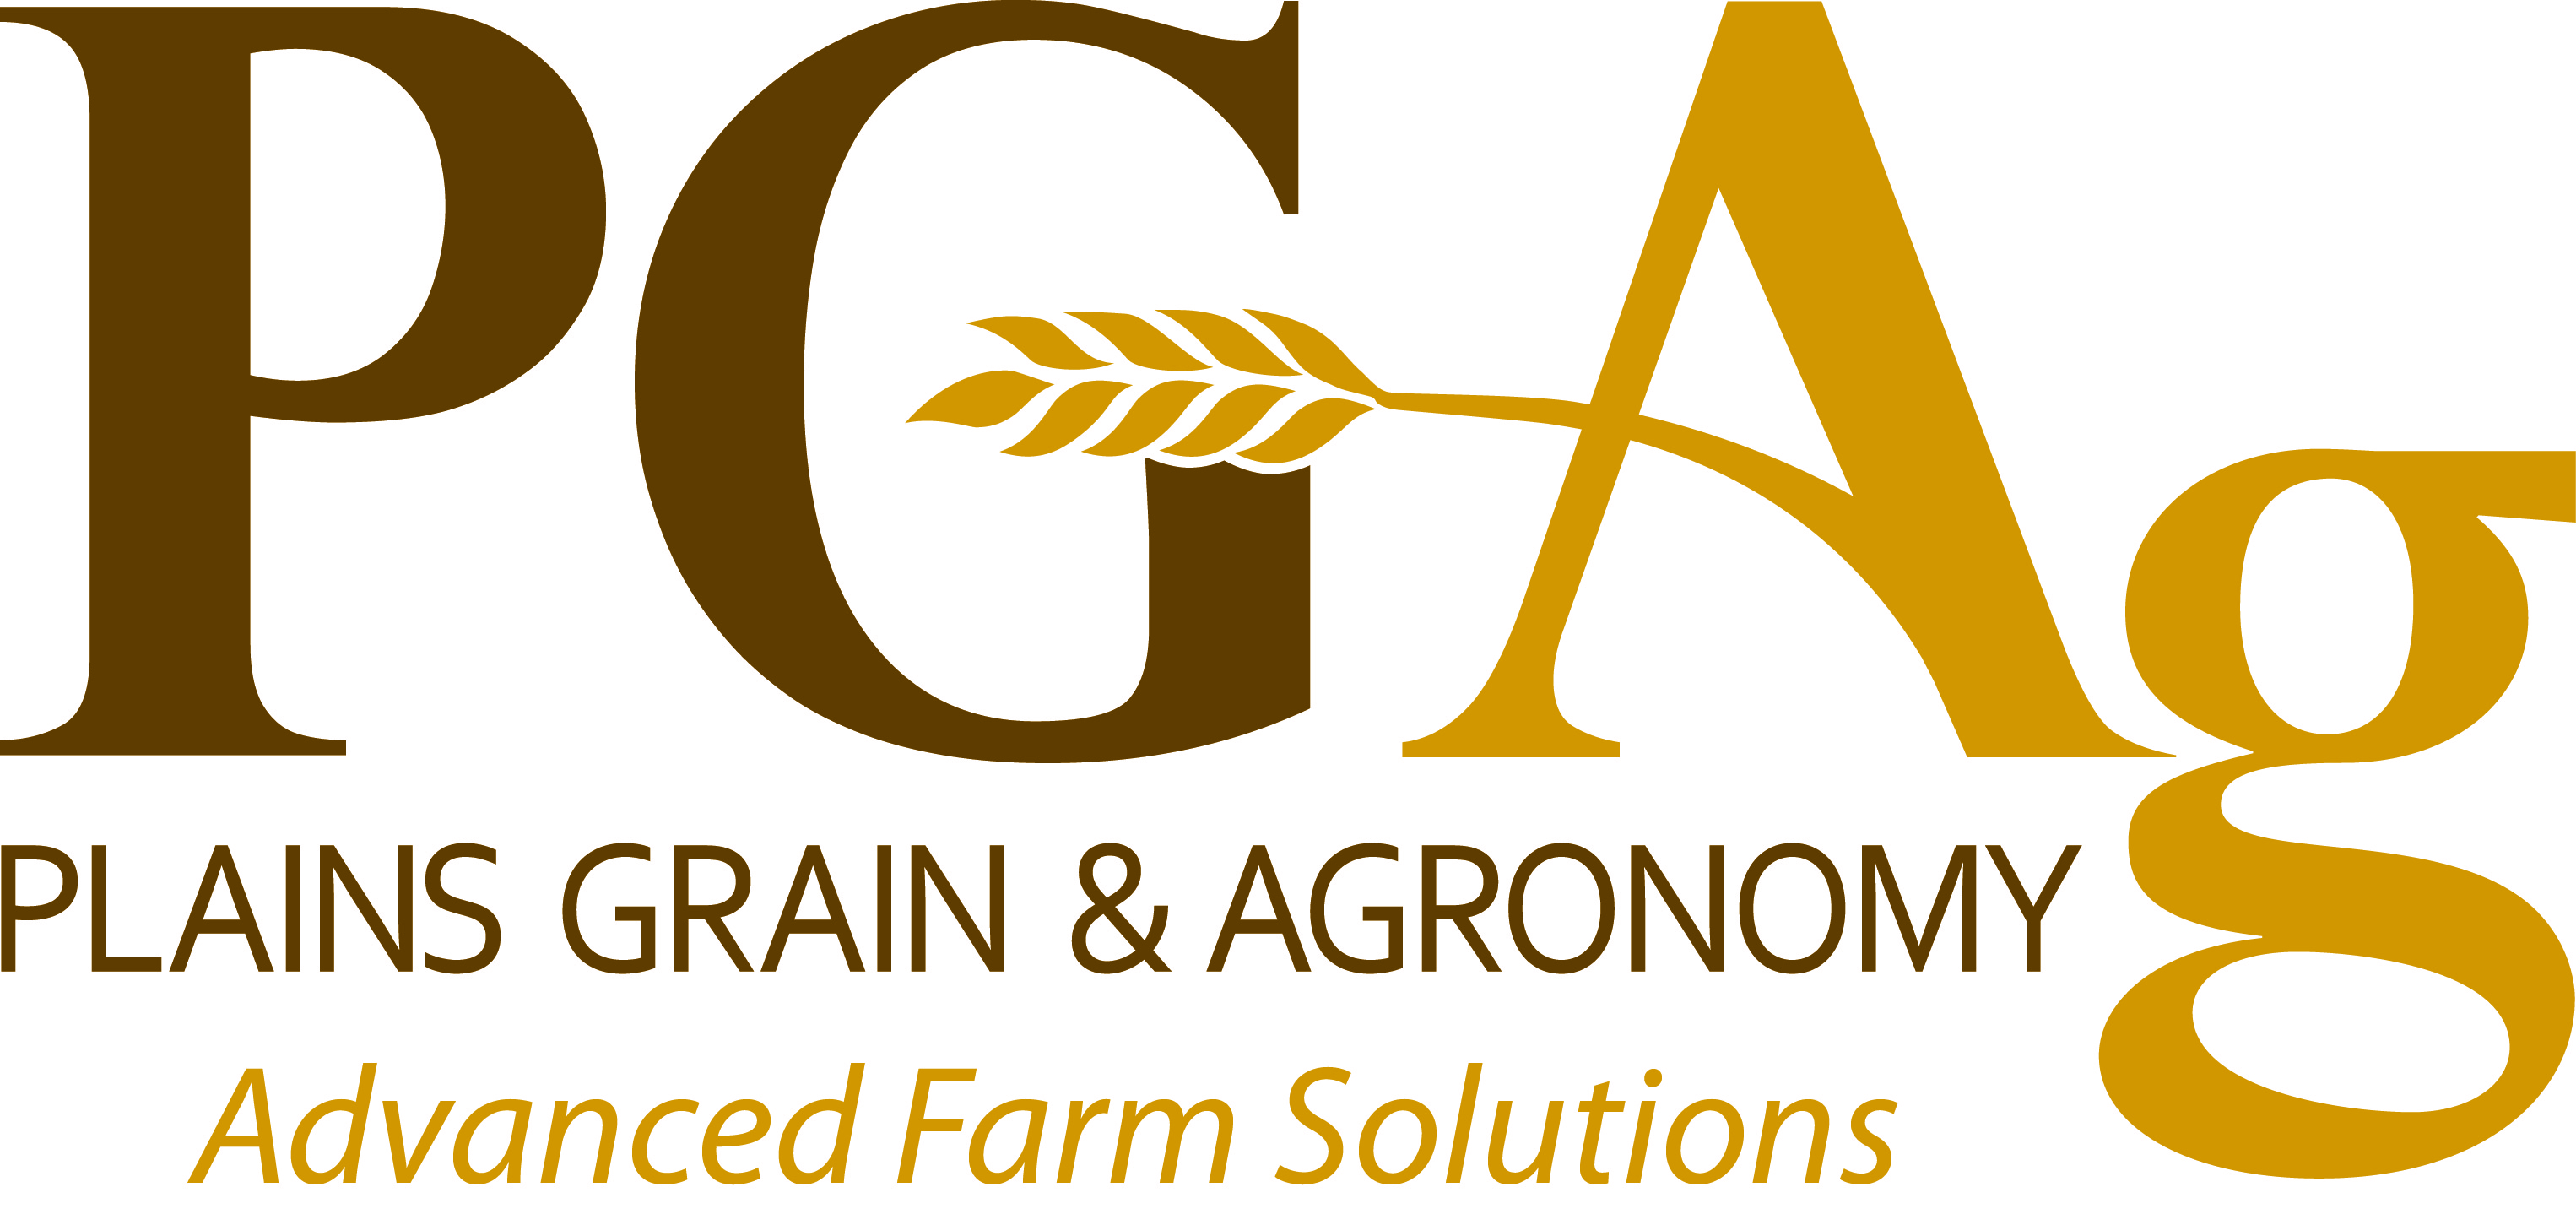 Plains Grain & Agronomy